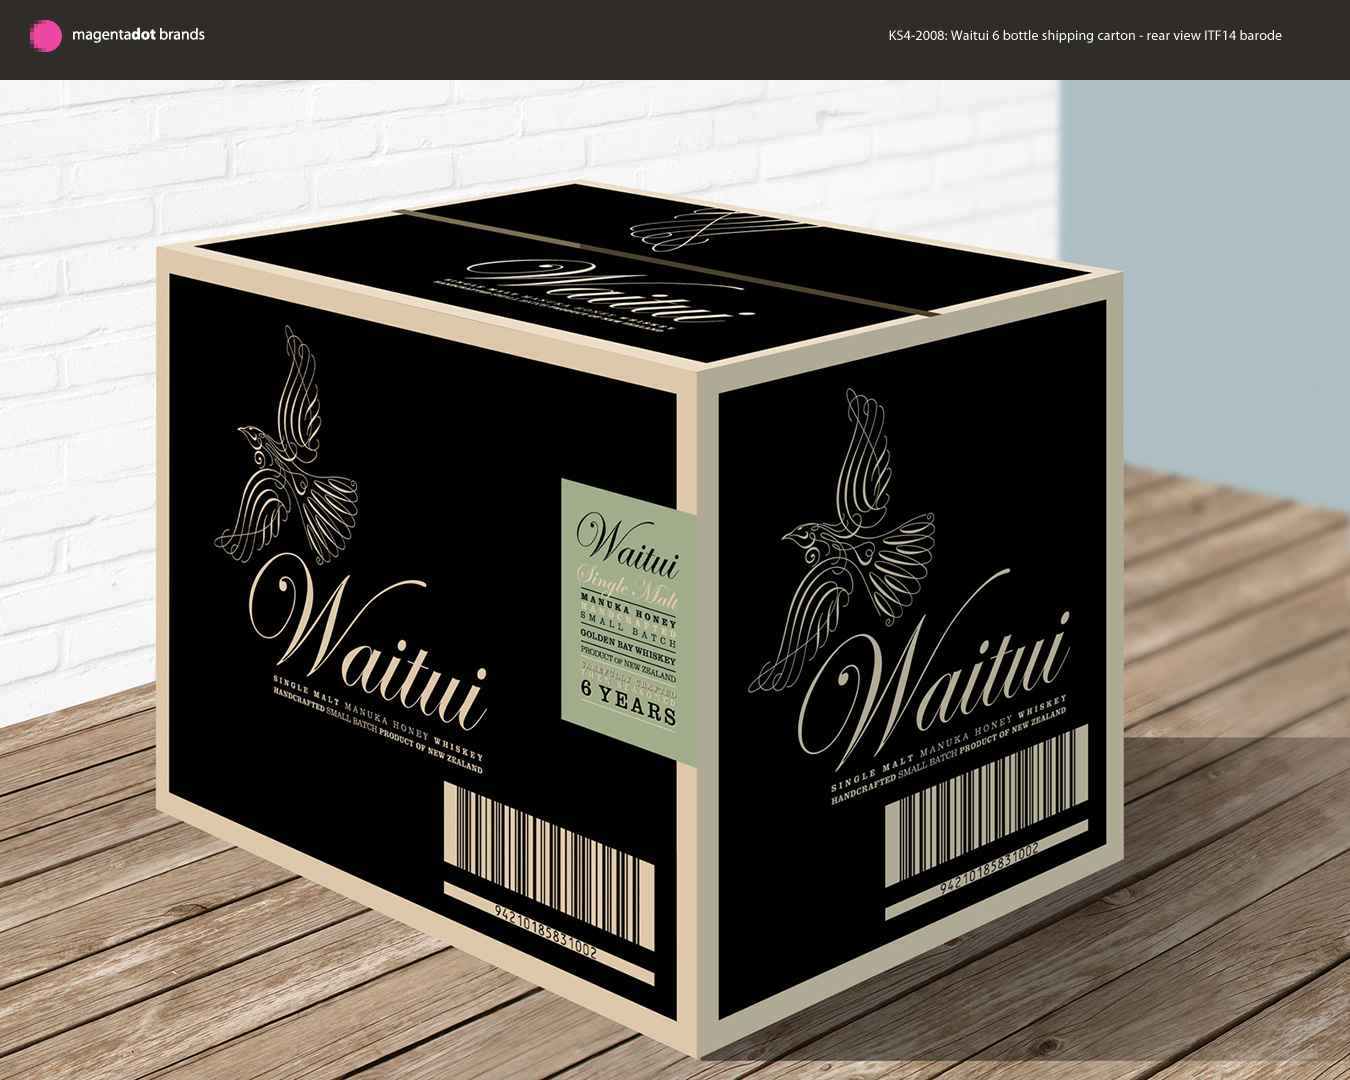 Draft design for 6 bottle shipping carton. Rear view. Packaging.